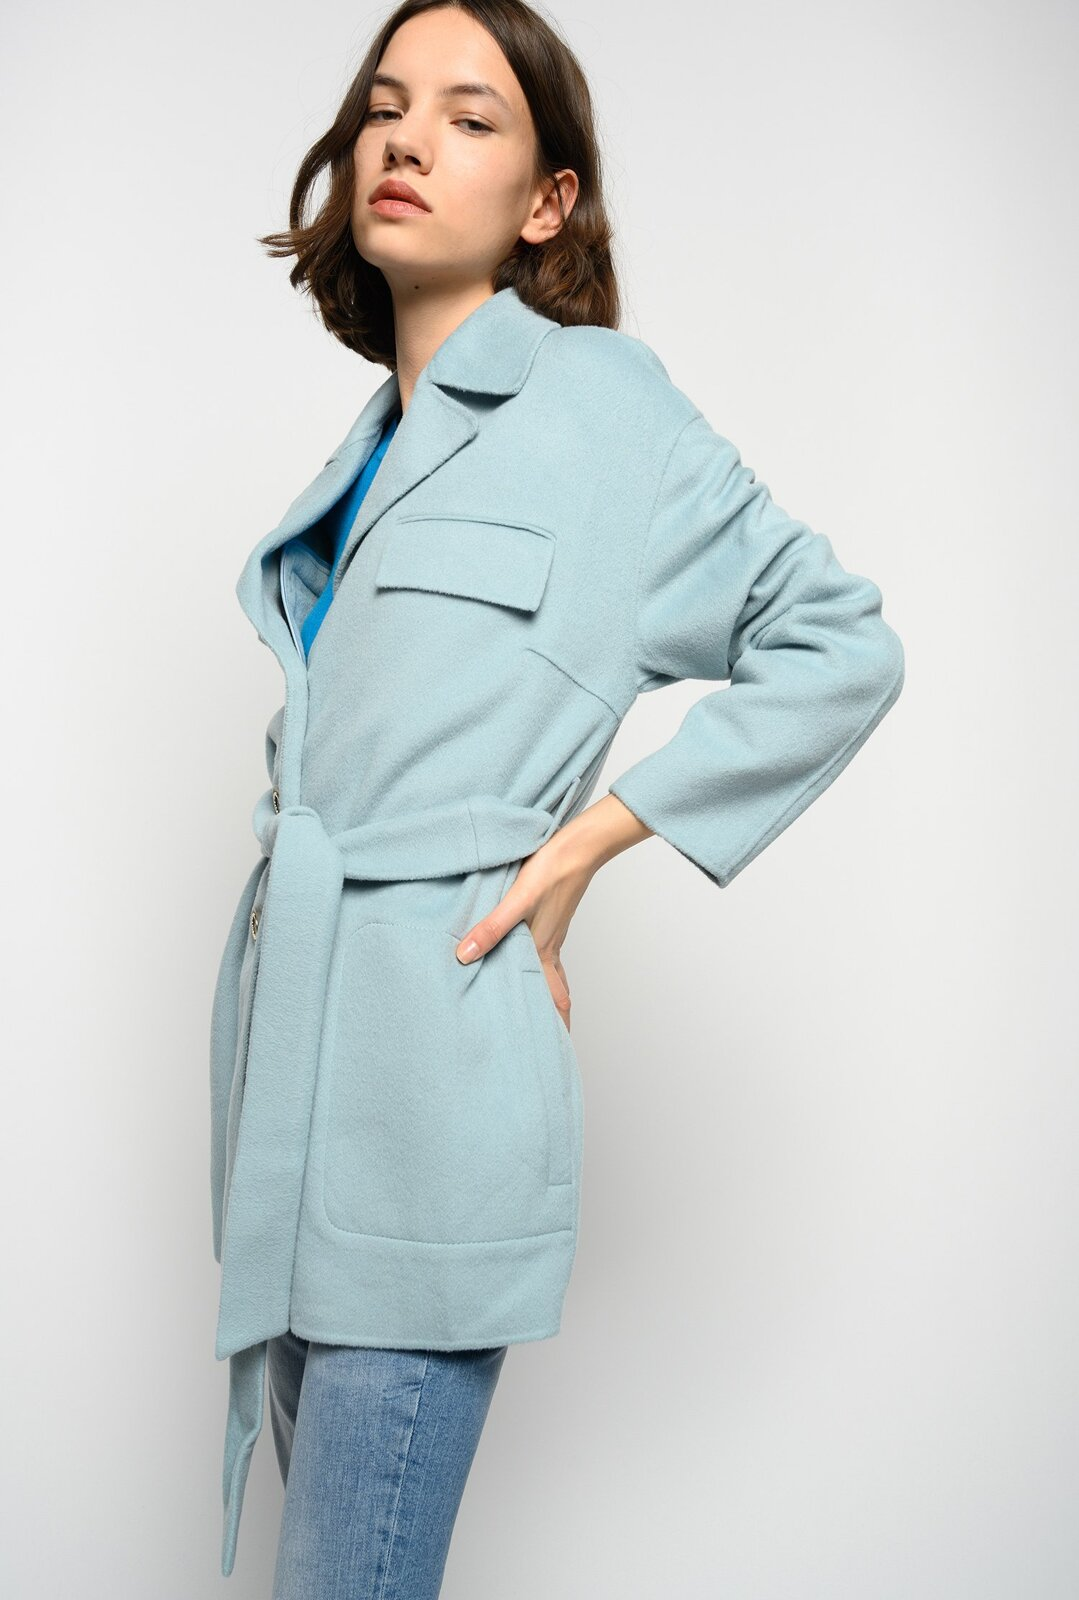 Field Jacket In Panno Double - Pinko